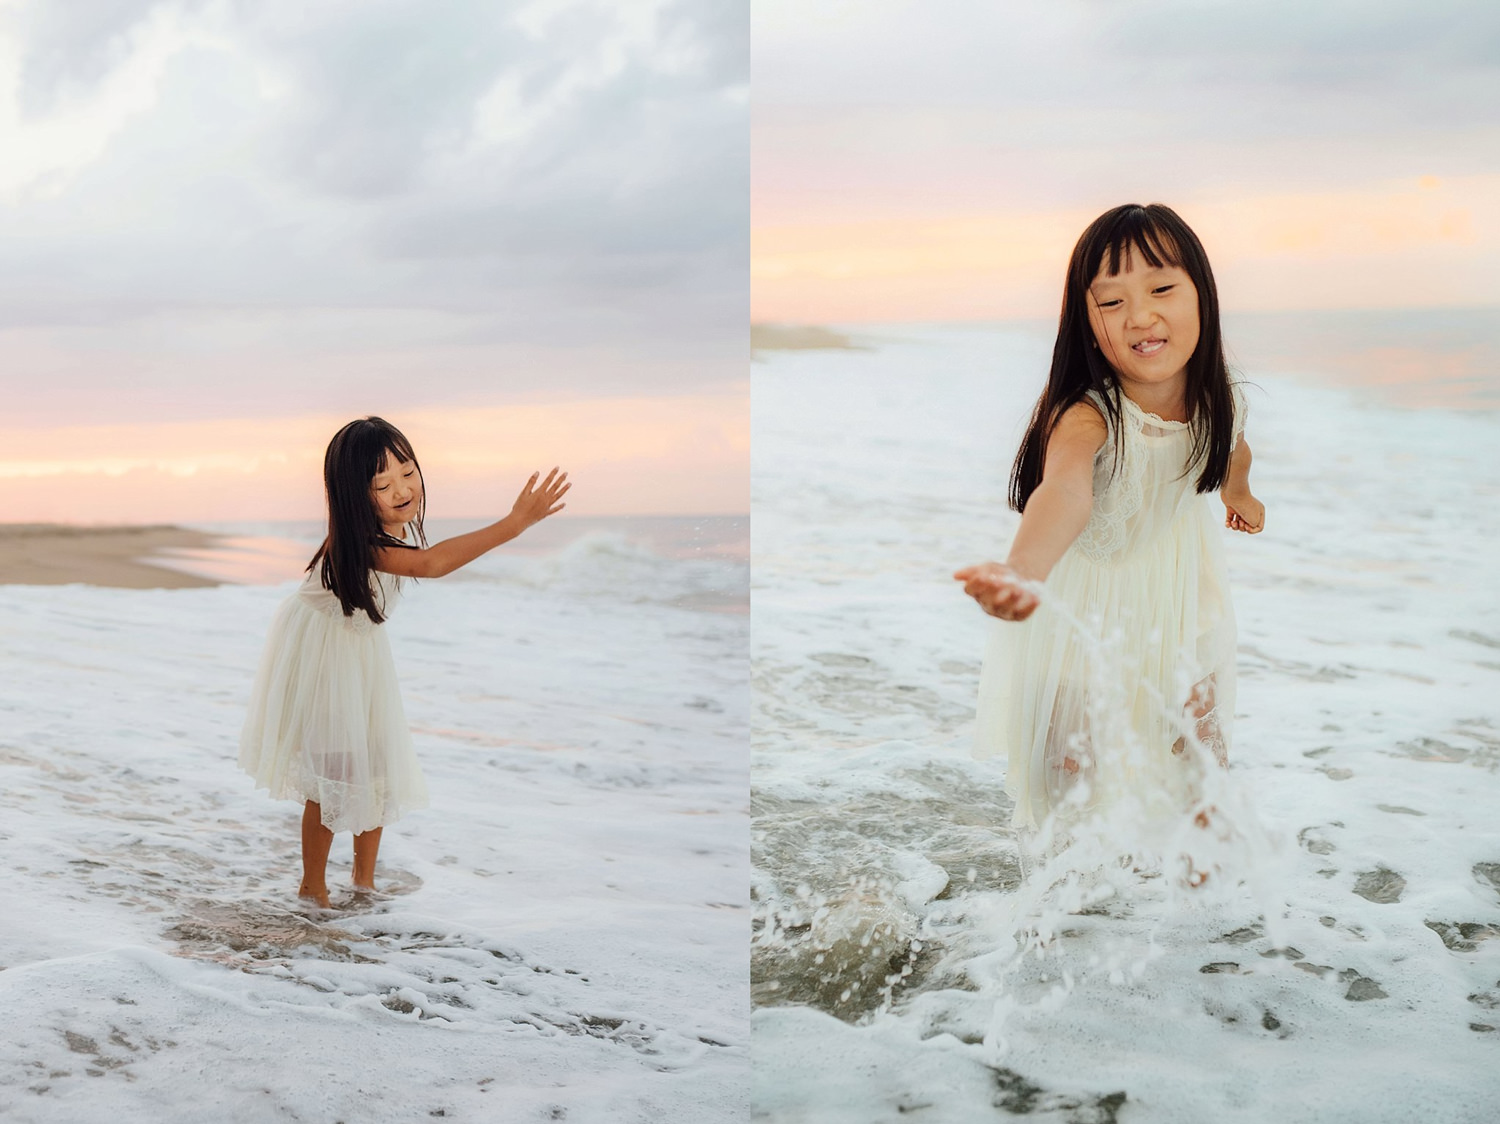 virginia-beach-child-photo-session-beauty-revivied-melissa-bliss-photography.jpg